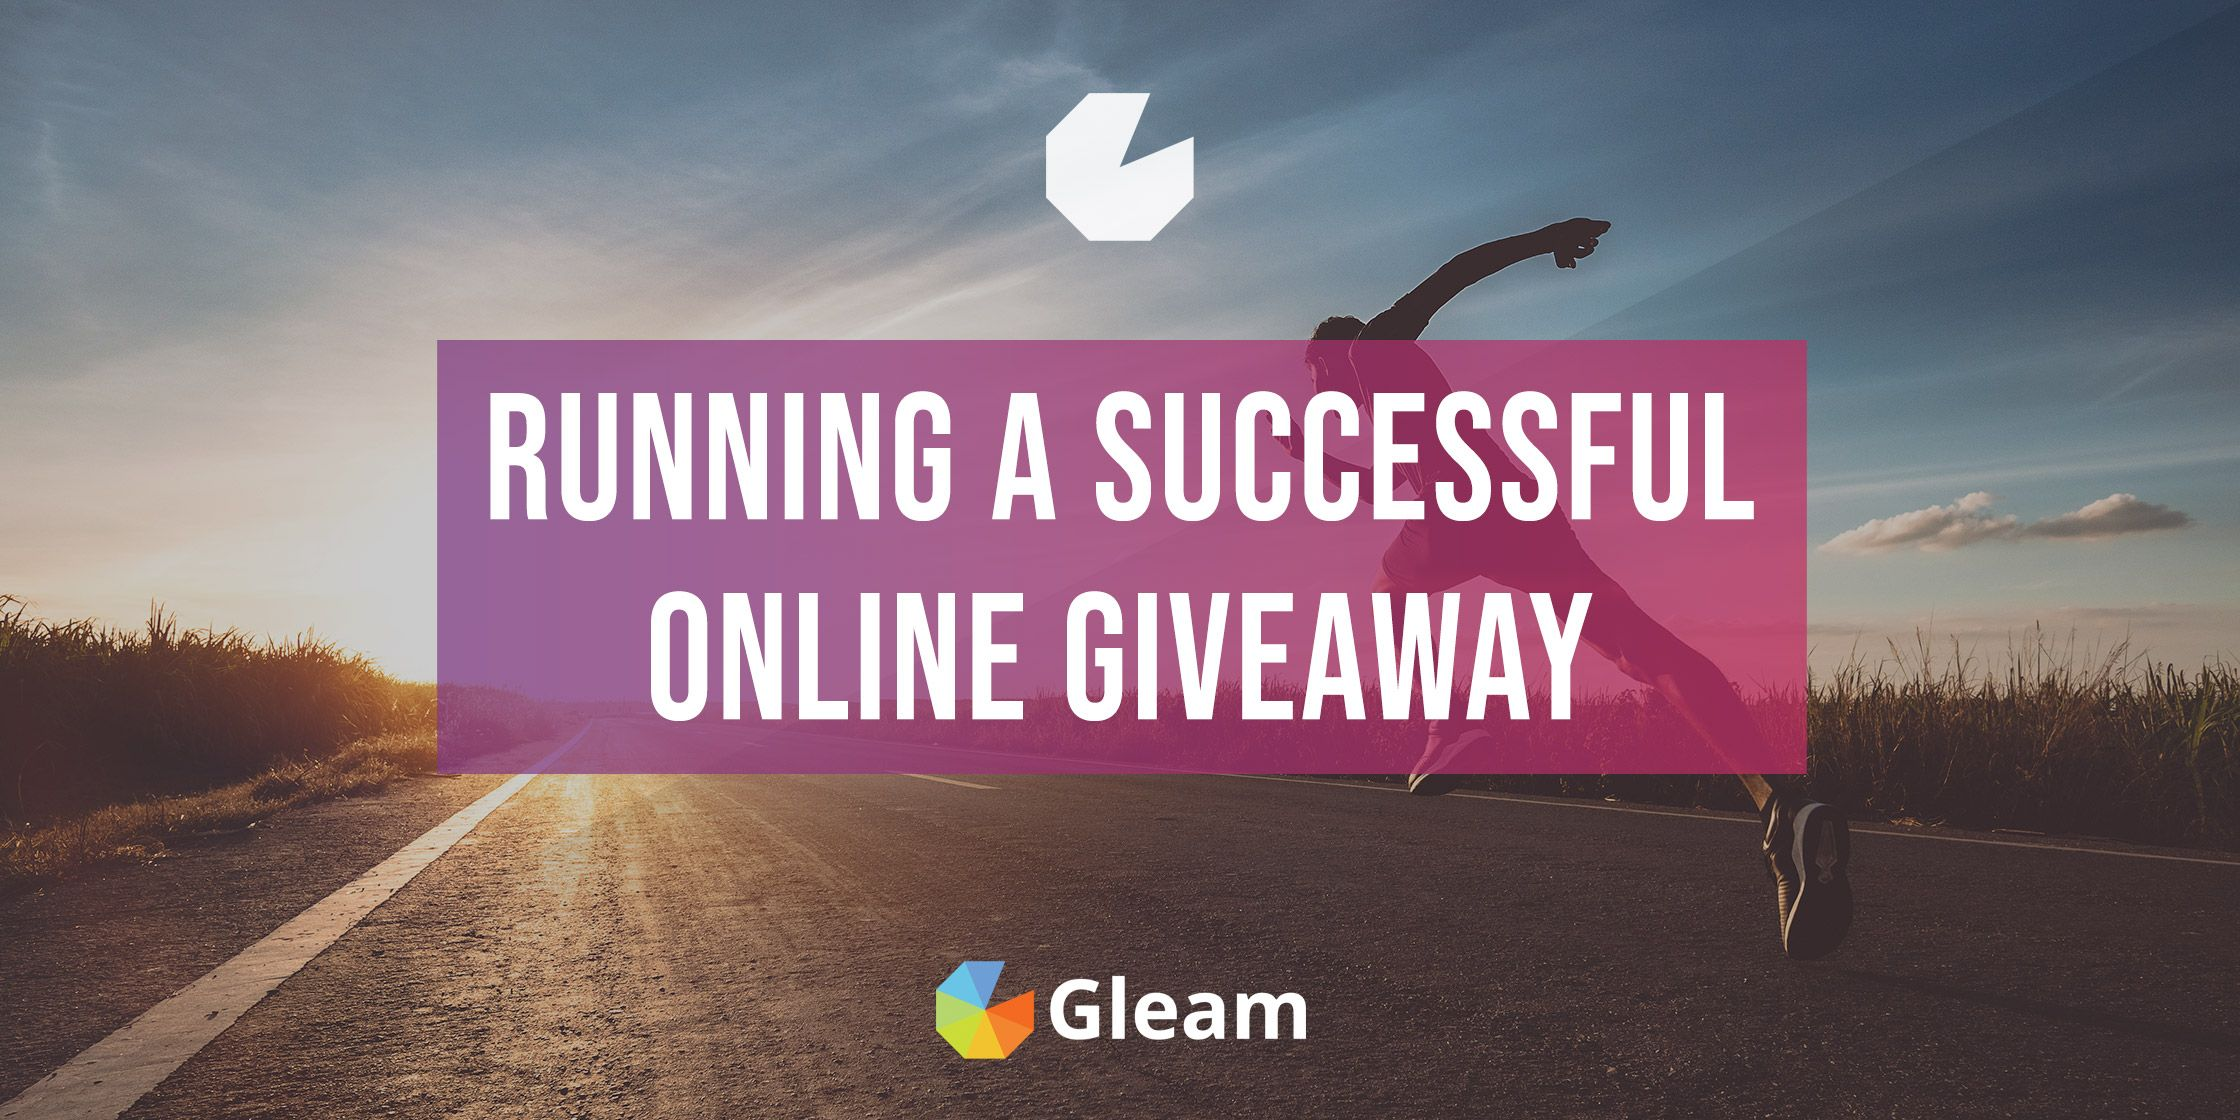 How to Run a Successful Online Giveaway